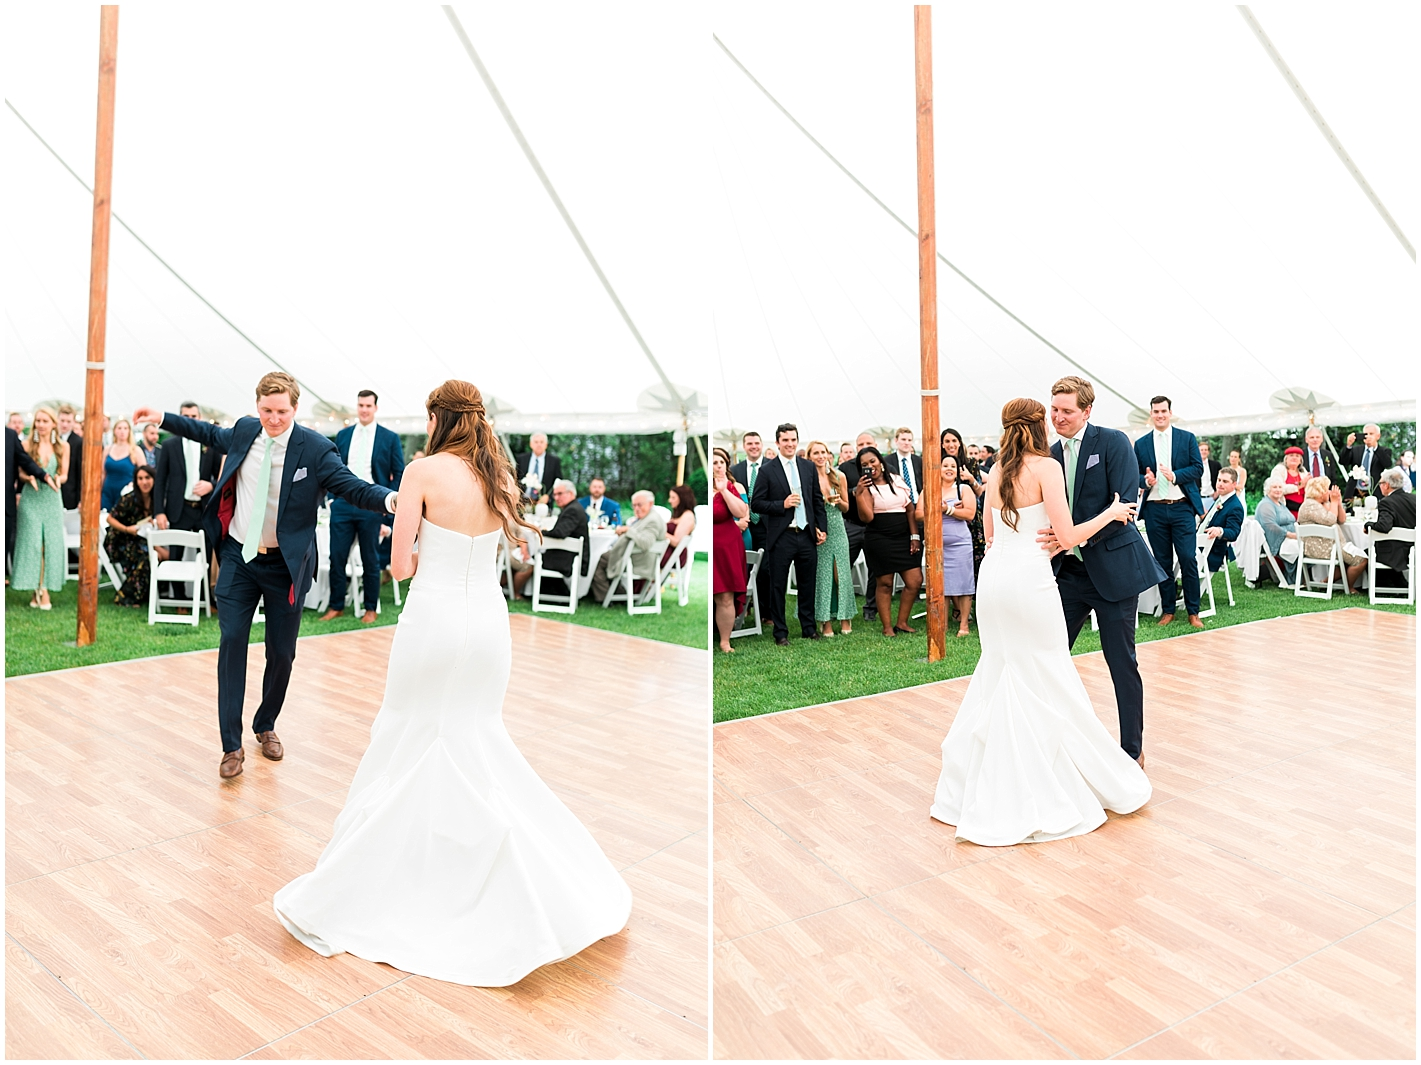 Adorable First Dance Photos by Alyssa Parker Photography